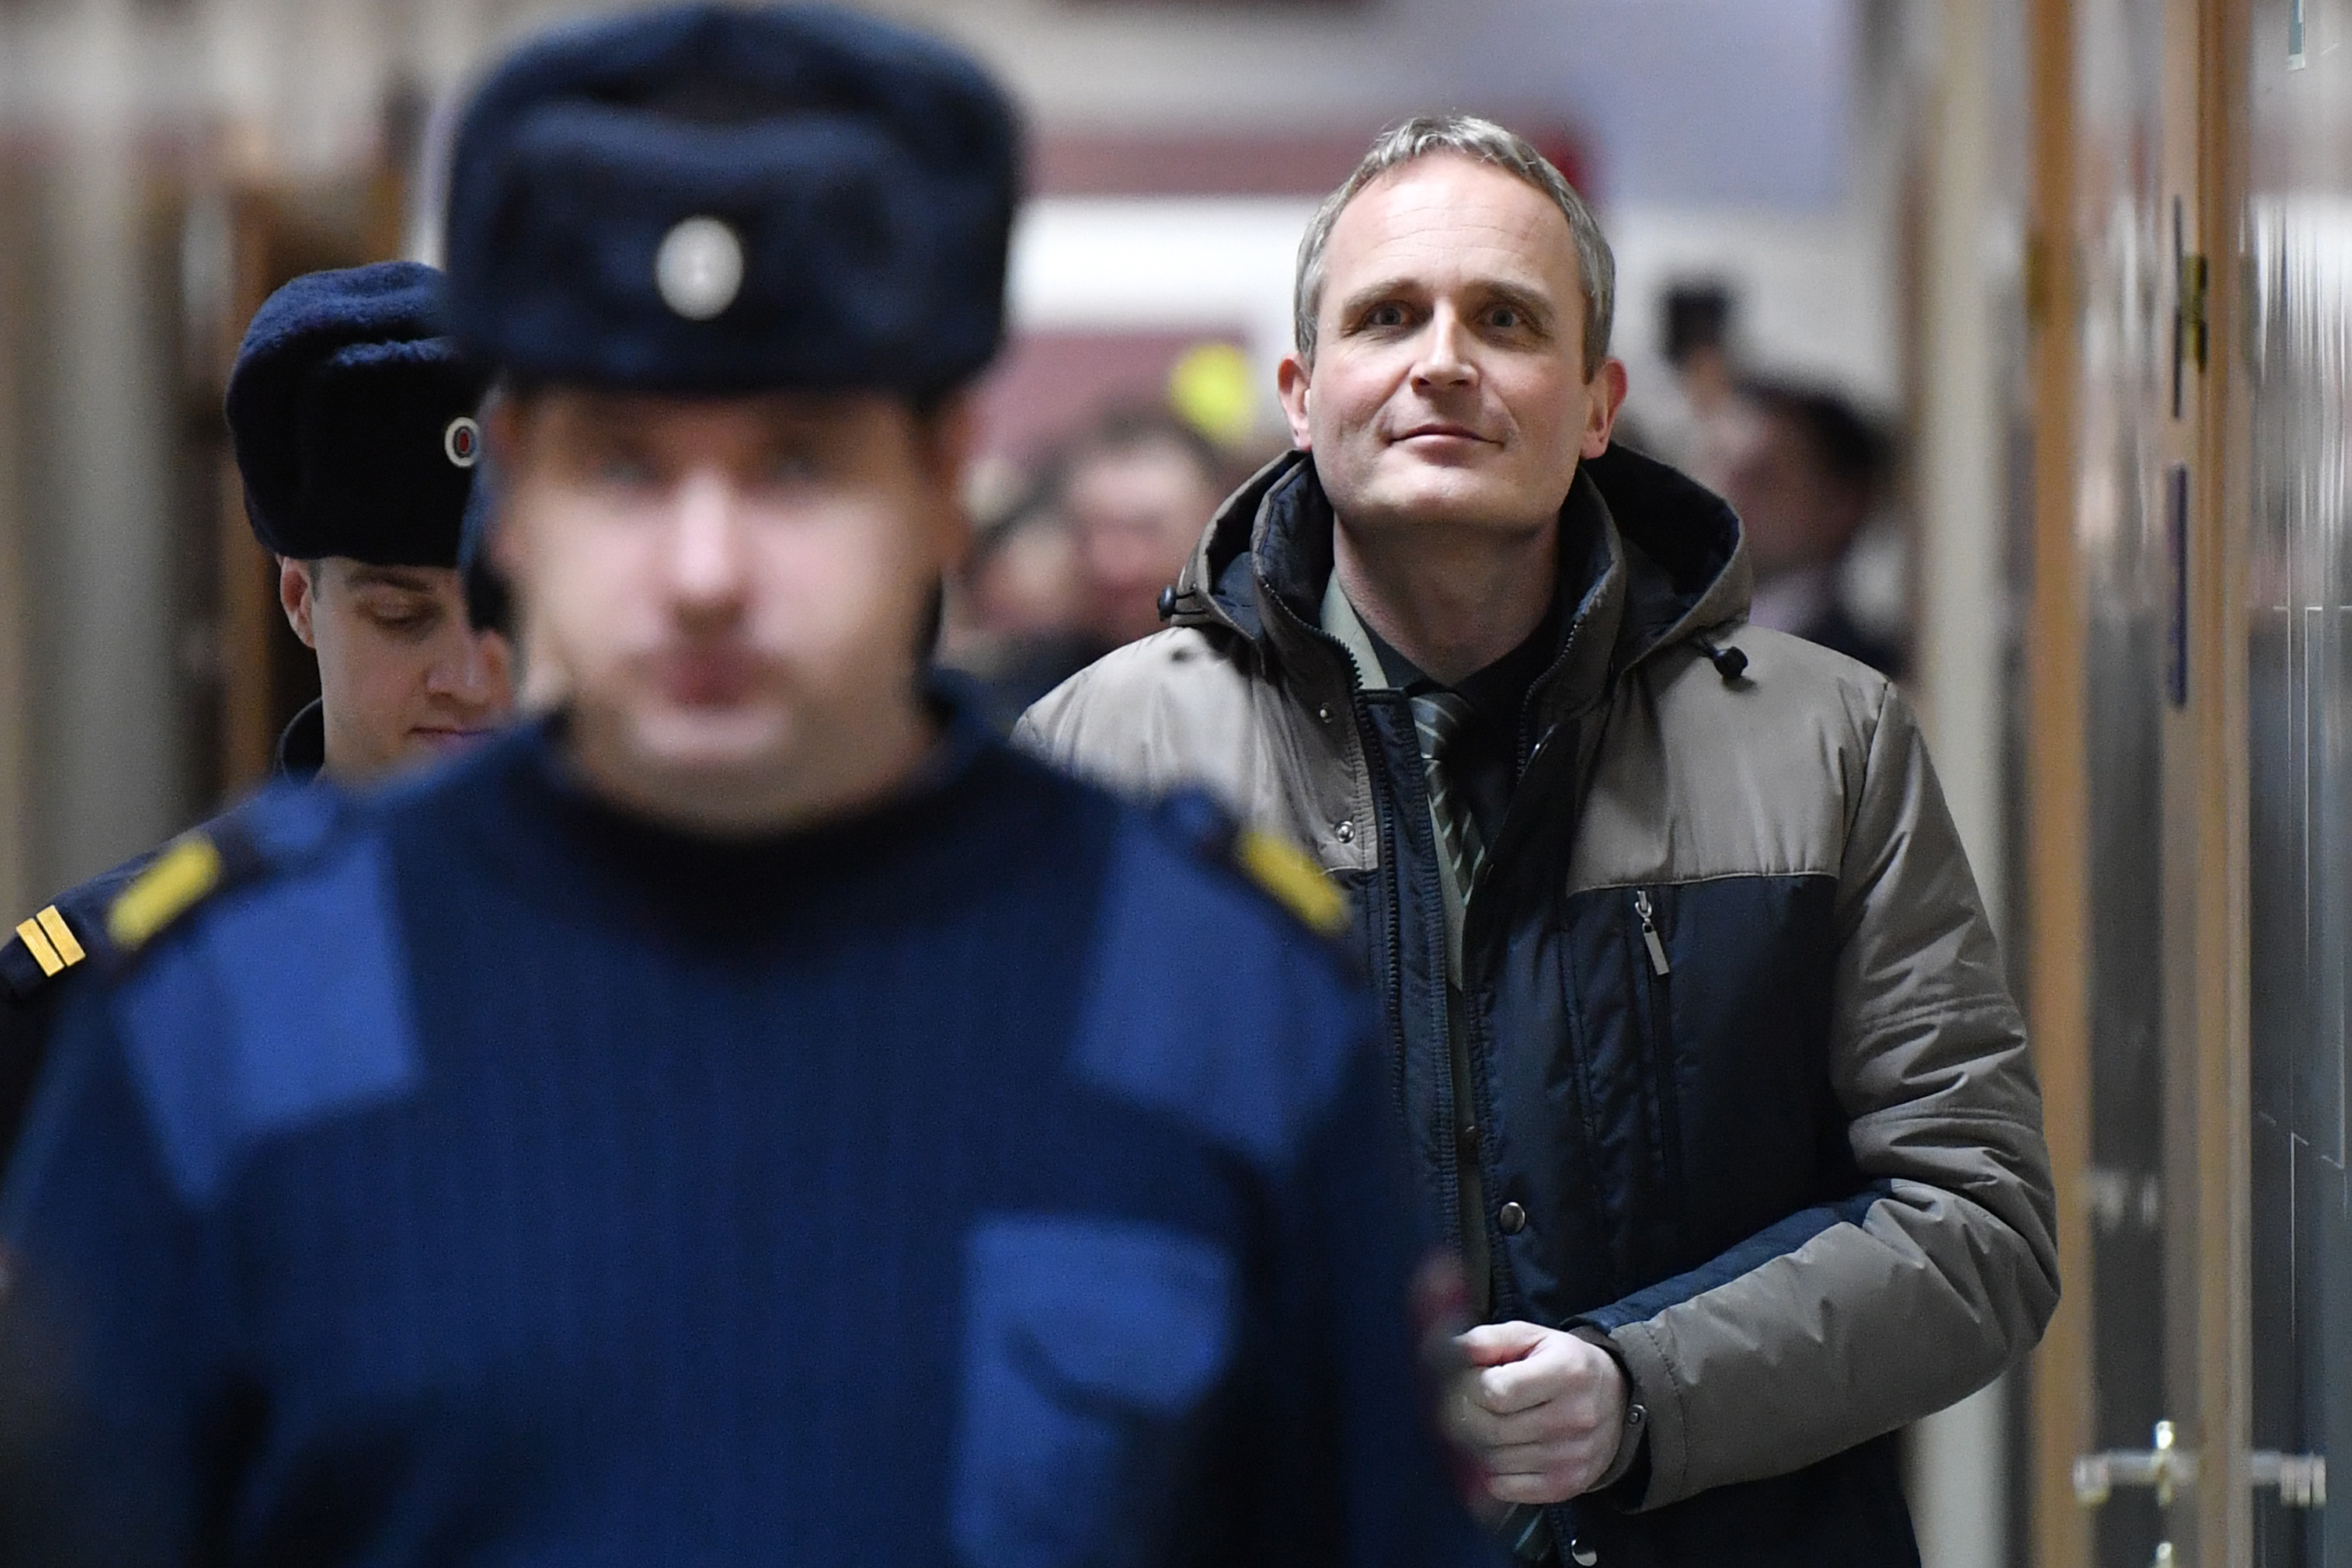 Dennis Christensen is escorted inside a courthouse following the verdict announcement in the town of Oryol on February 6, 2019. (MLADEN ANTONOV/AFP via Getty Images)